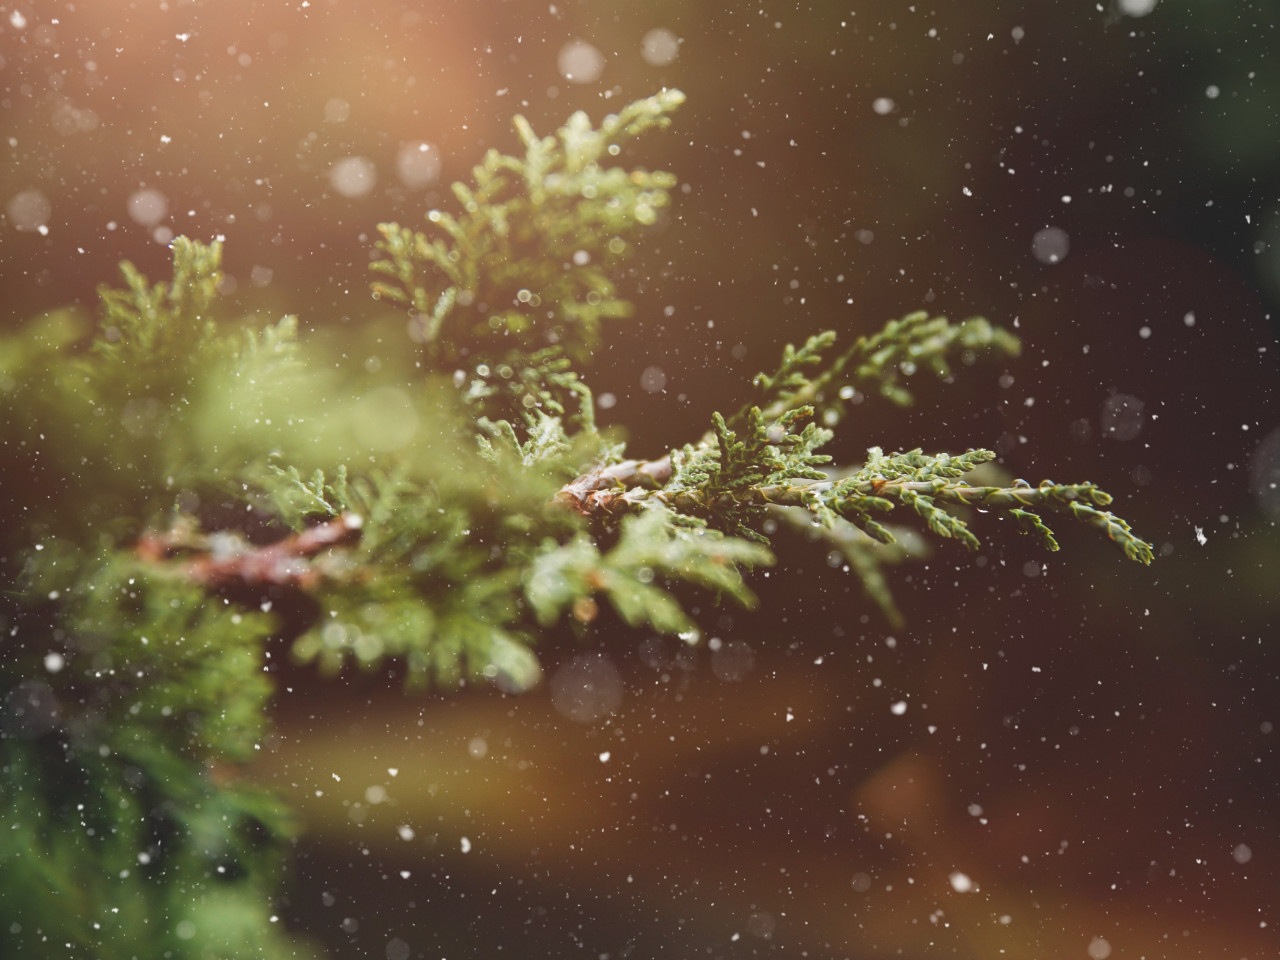 Snowflakes over the pine branch wallpaper 1280x960